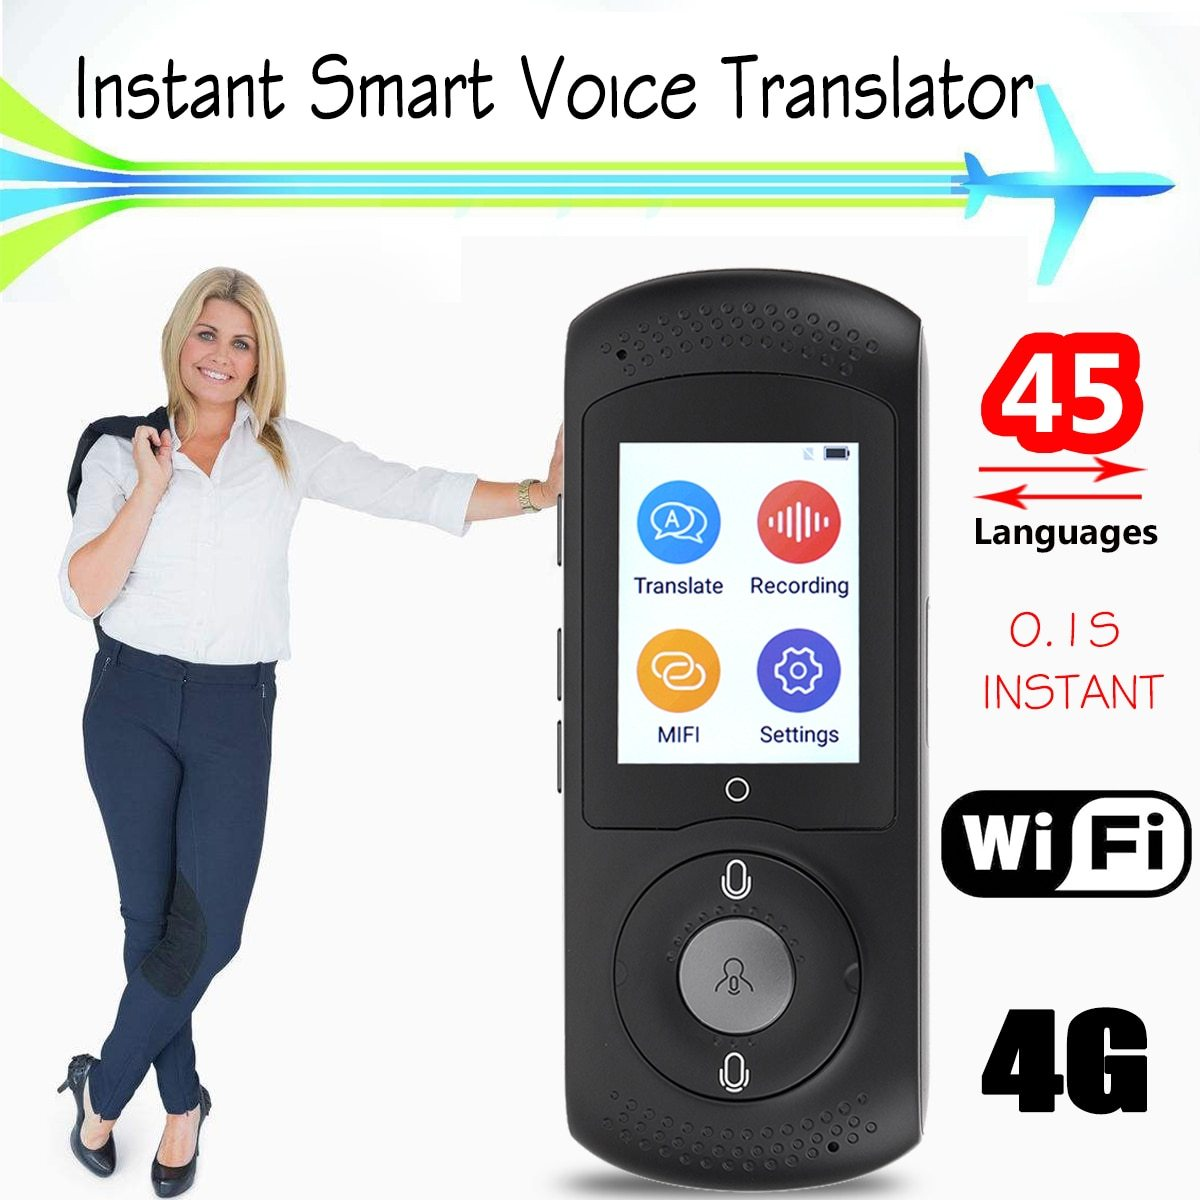 Portable Smart Voice Translator Wifi Instant Voice Translator Real Time 45  Multi-language Translation Traductor For Business